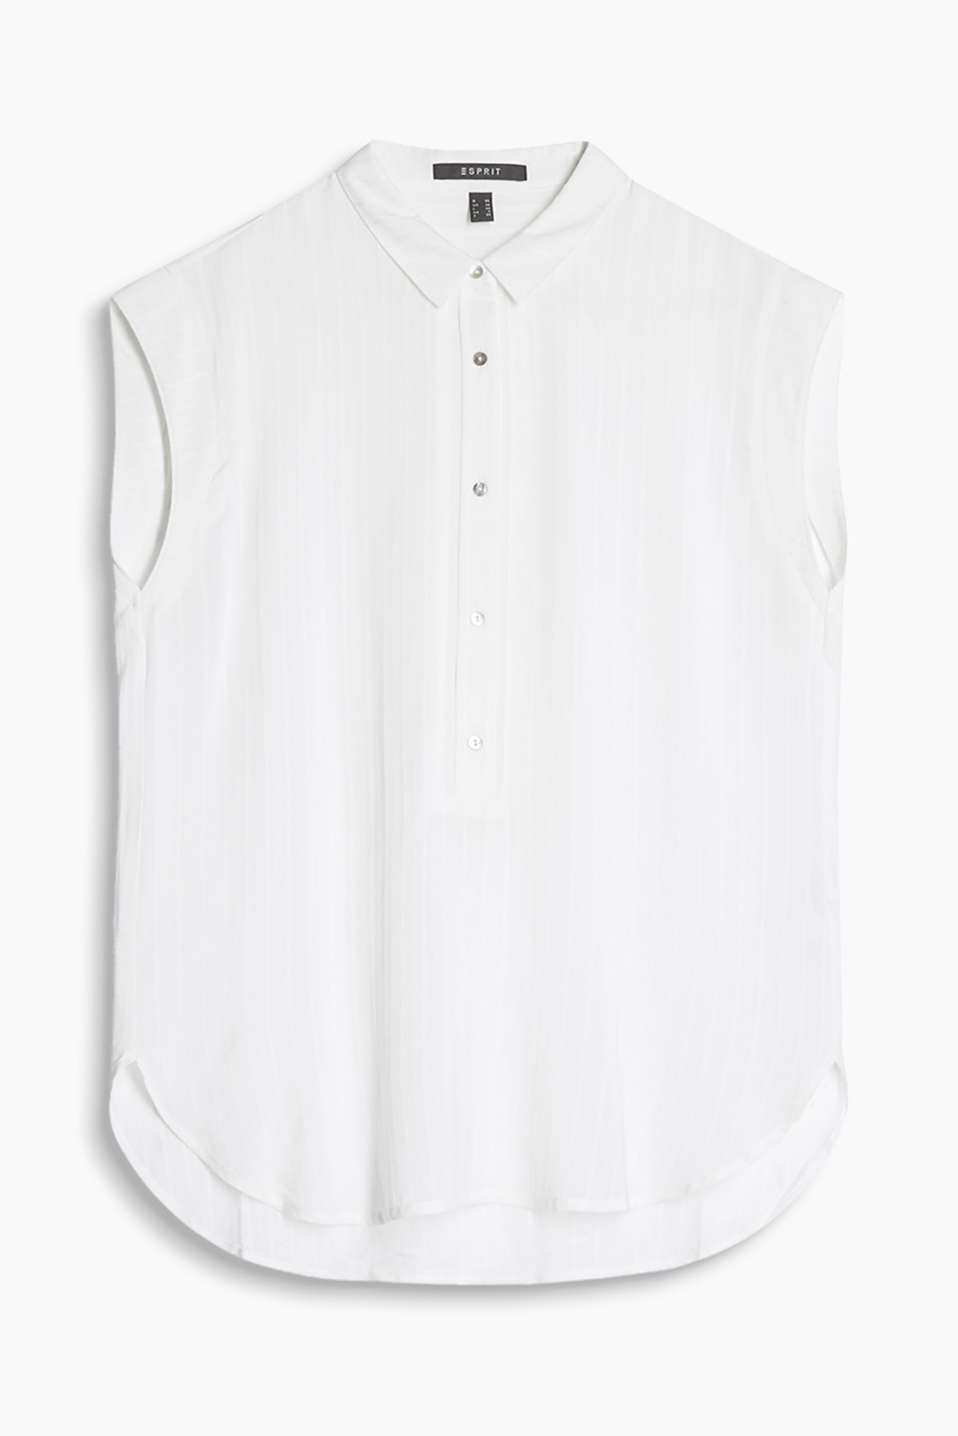 Casual and elegant blouse with fine woven stripes and a mother-of-pearl button placket